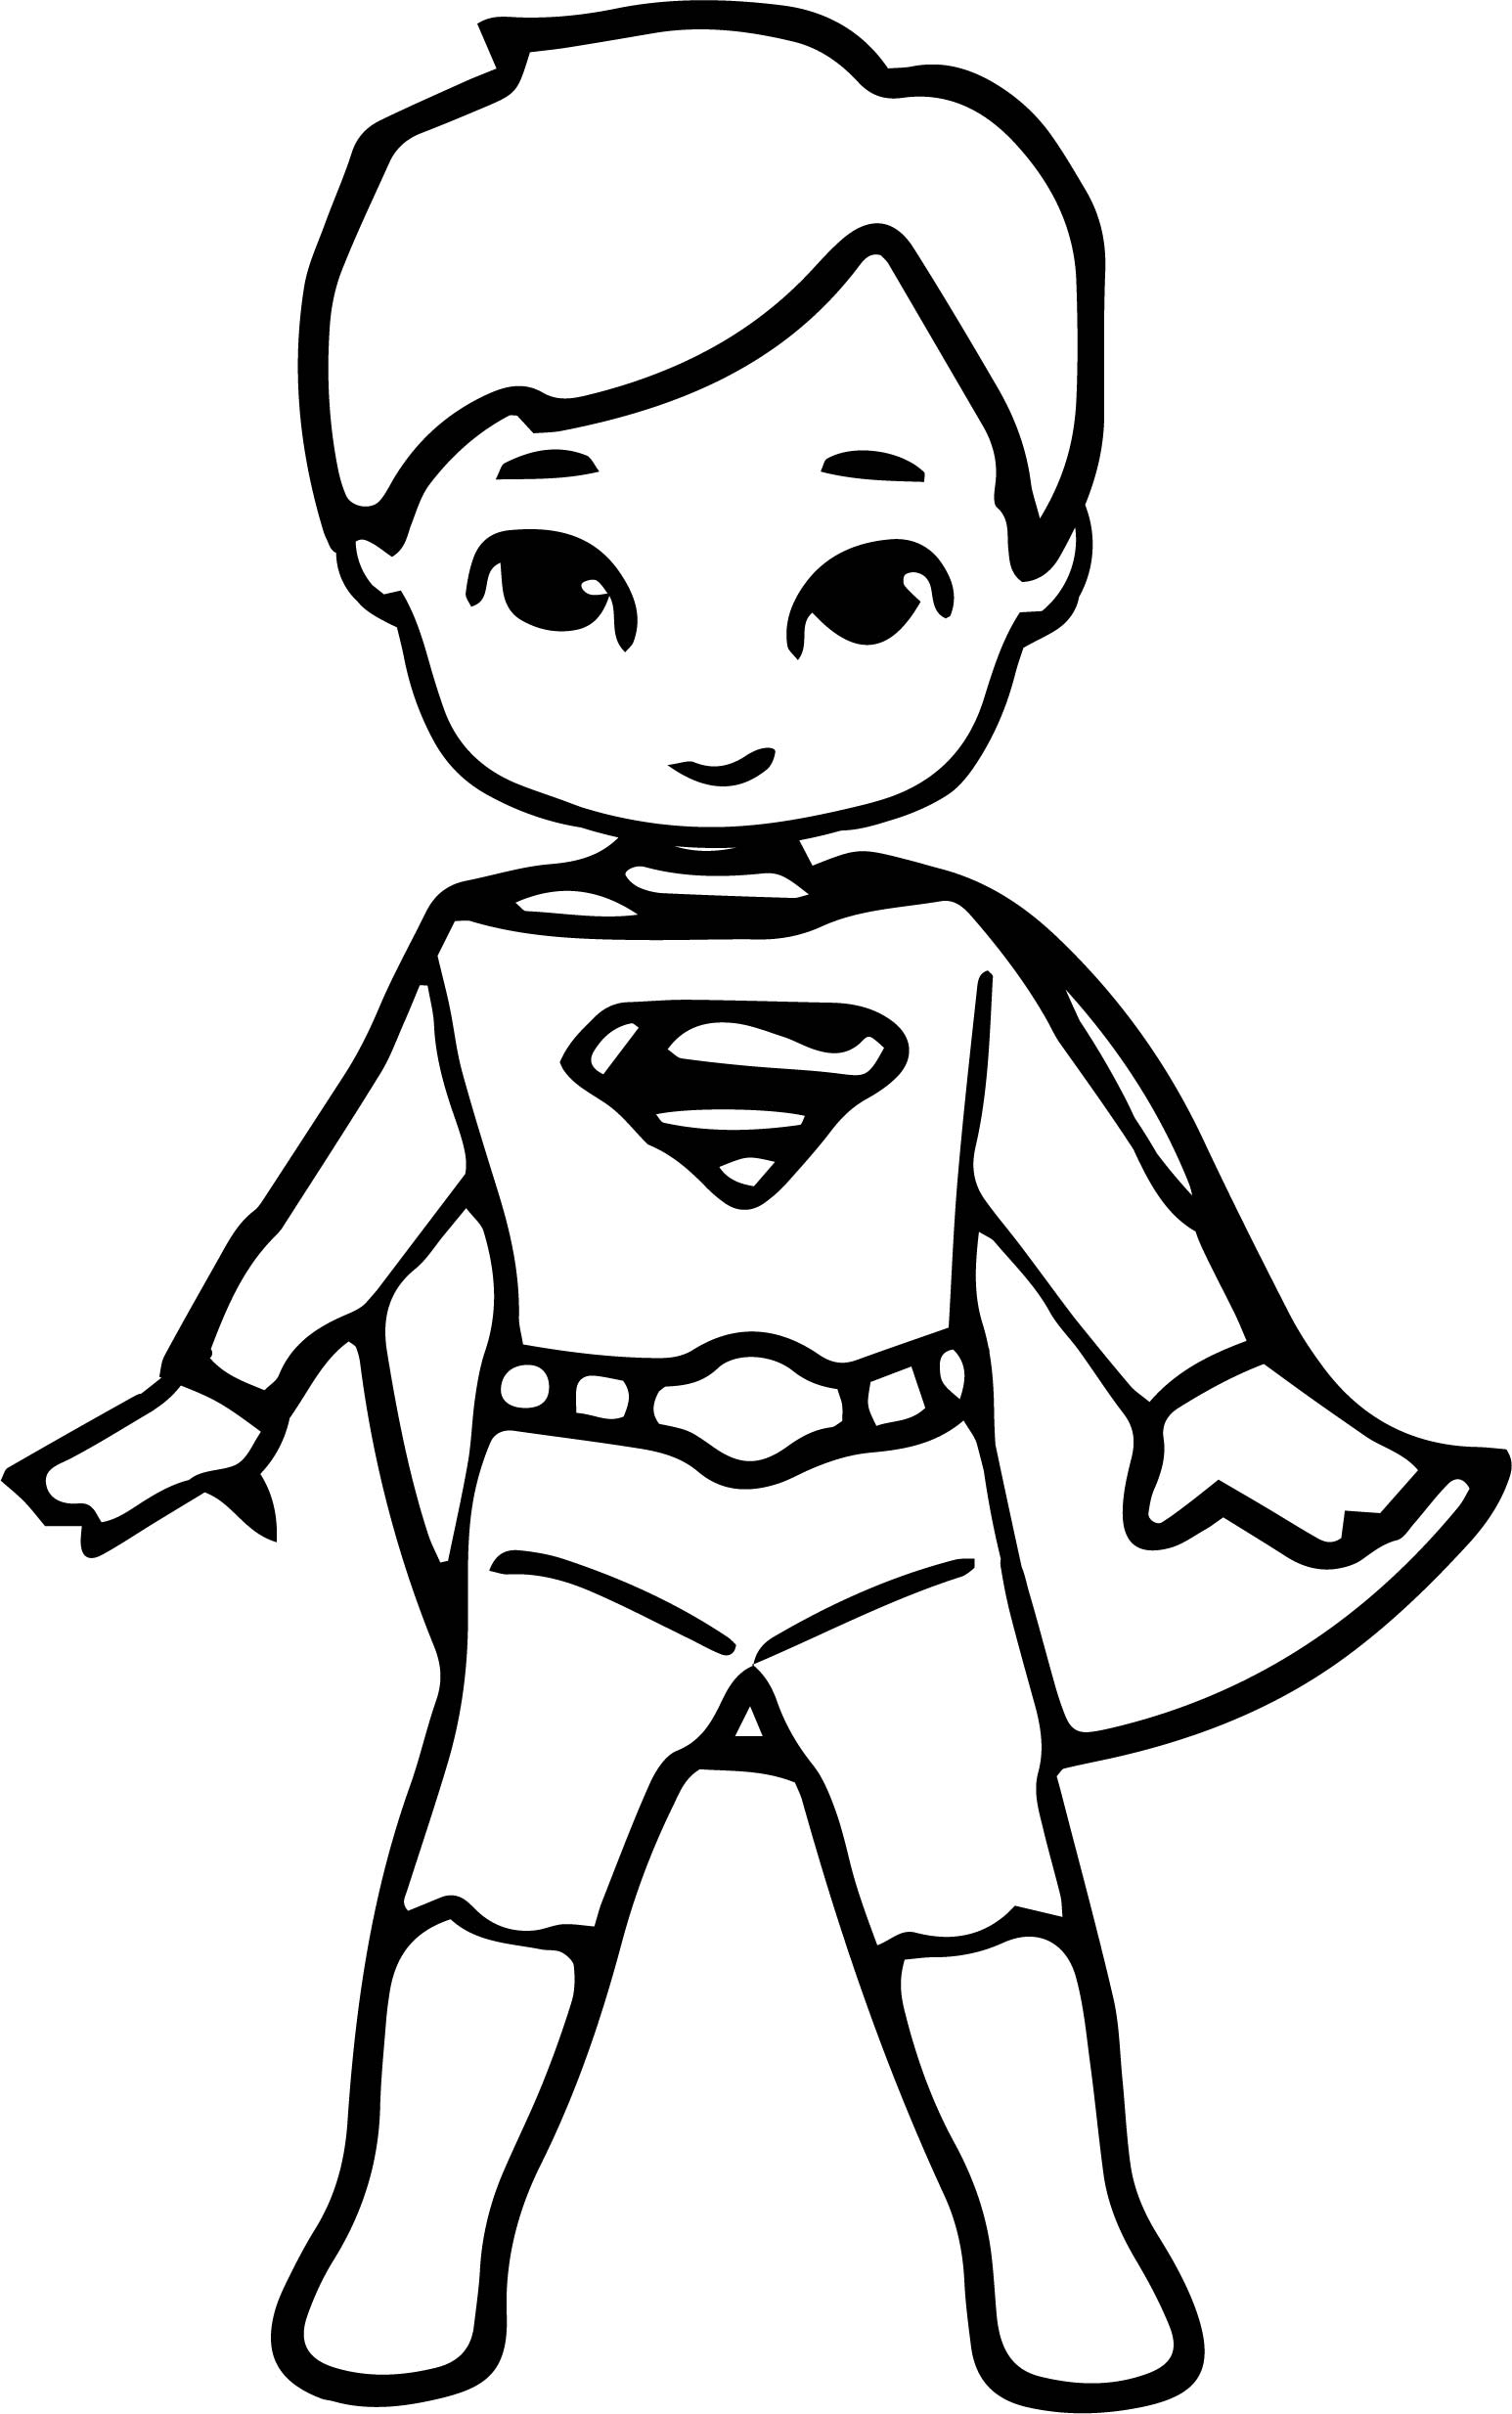 Waiting Cartoon Superhero Superman